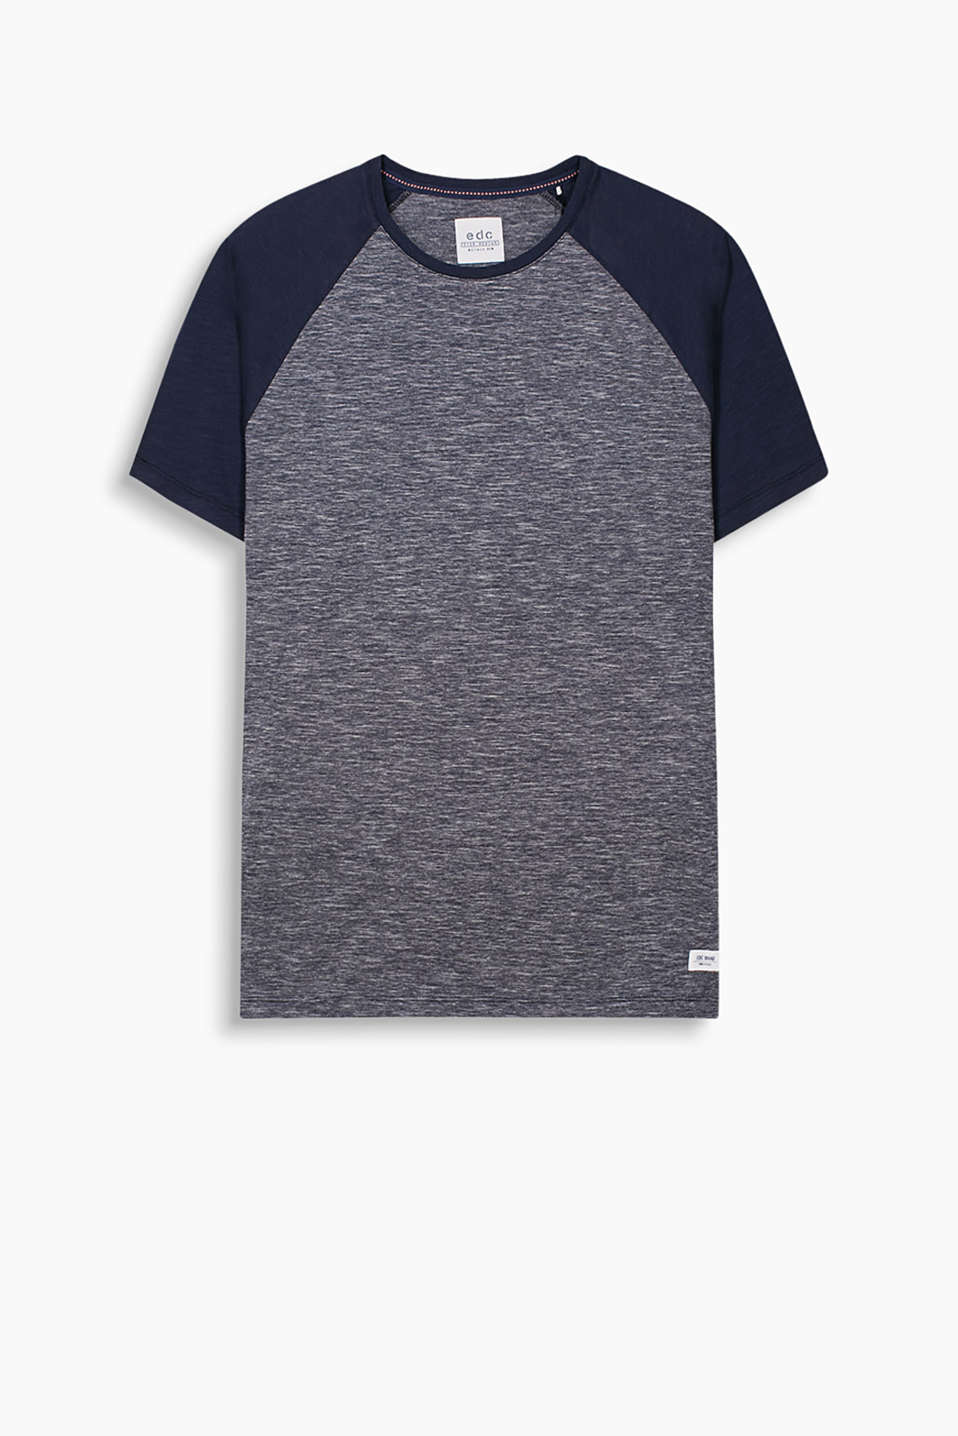 100% cotton T-shirt with raglan sleeves